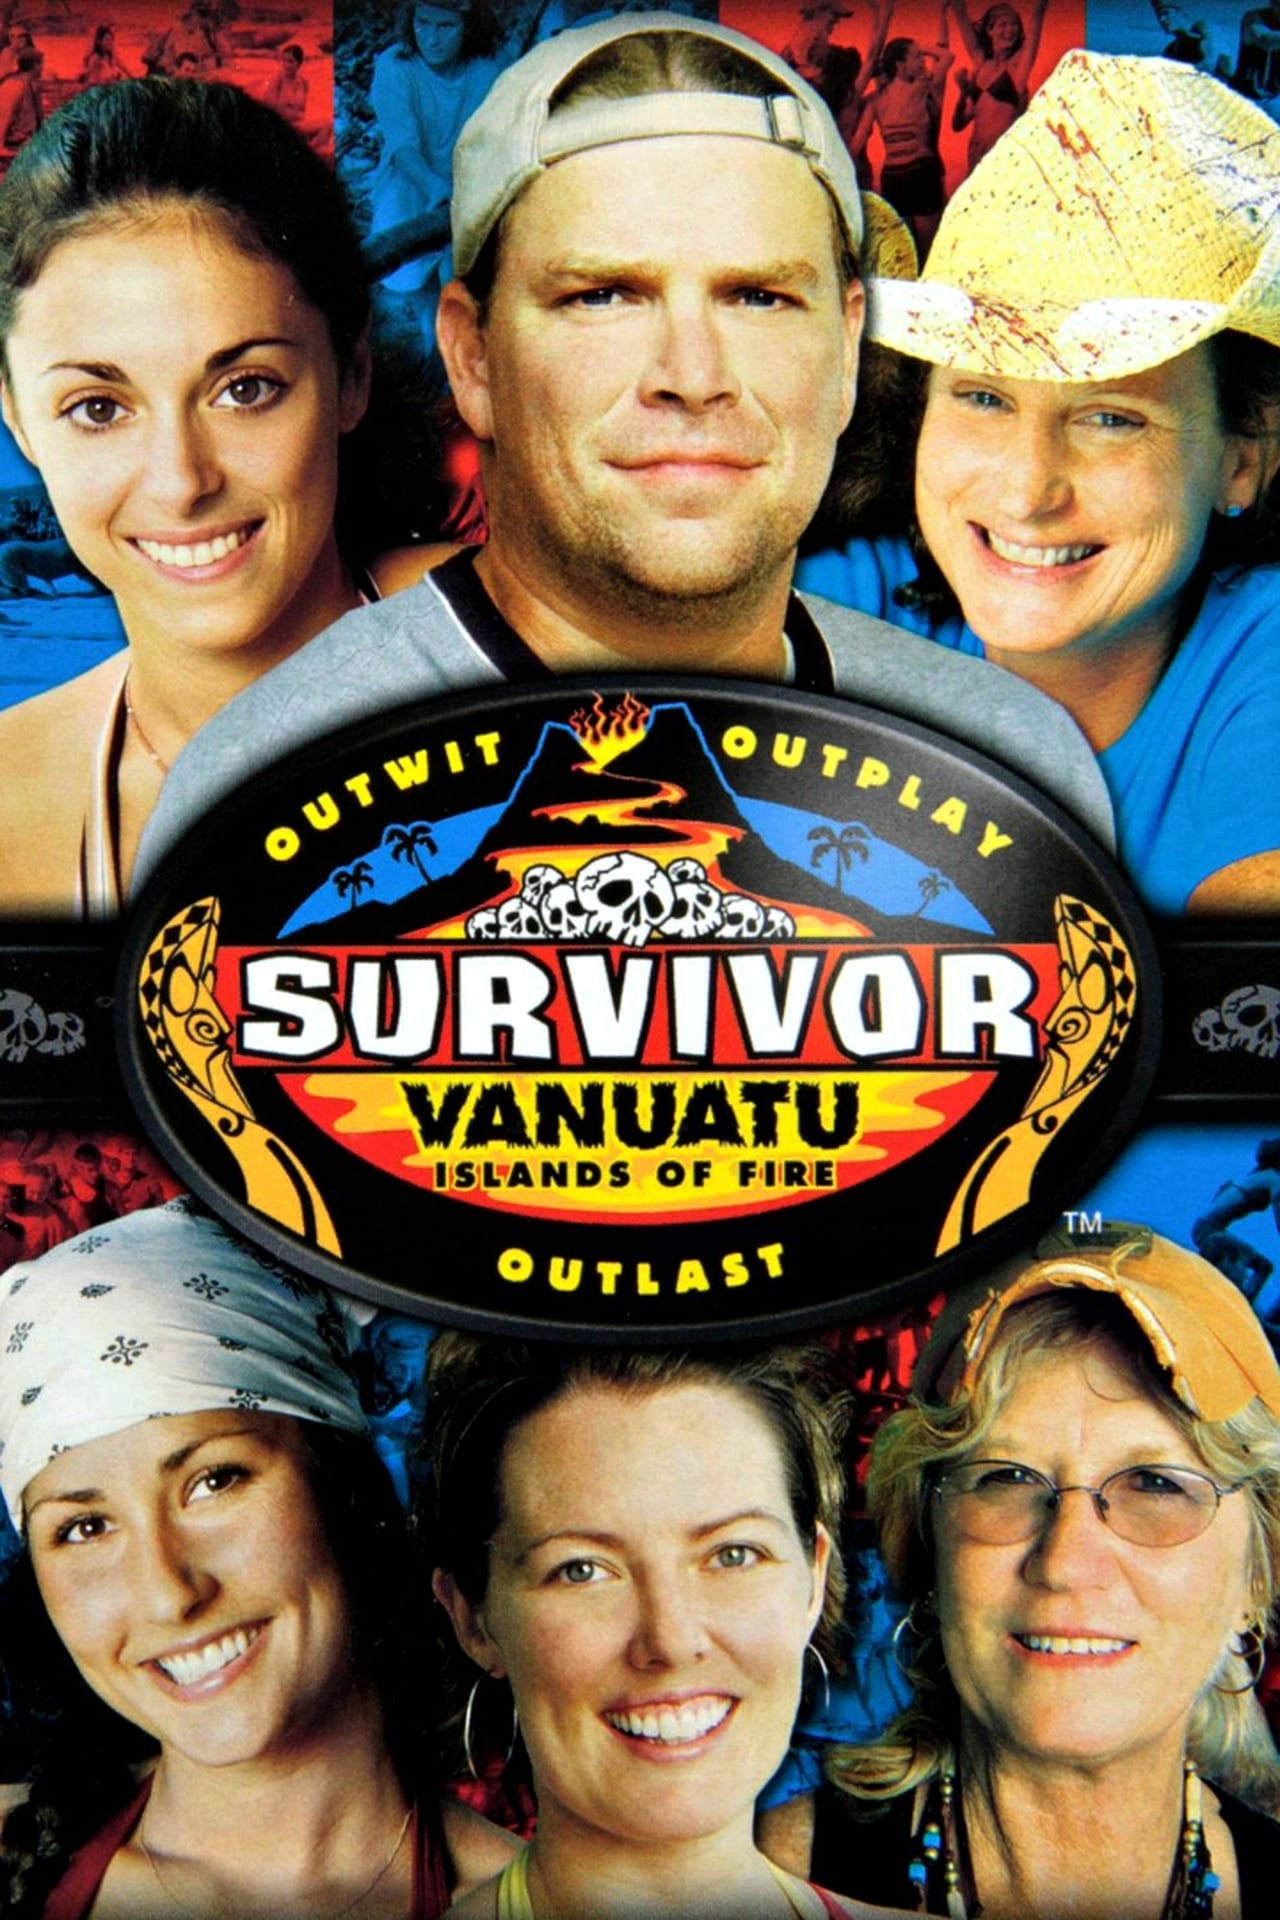 Putlocker Survivor Season 9 (2004)